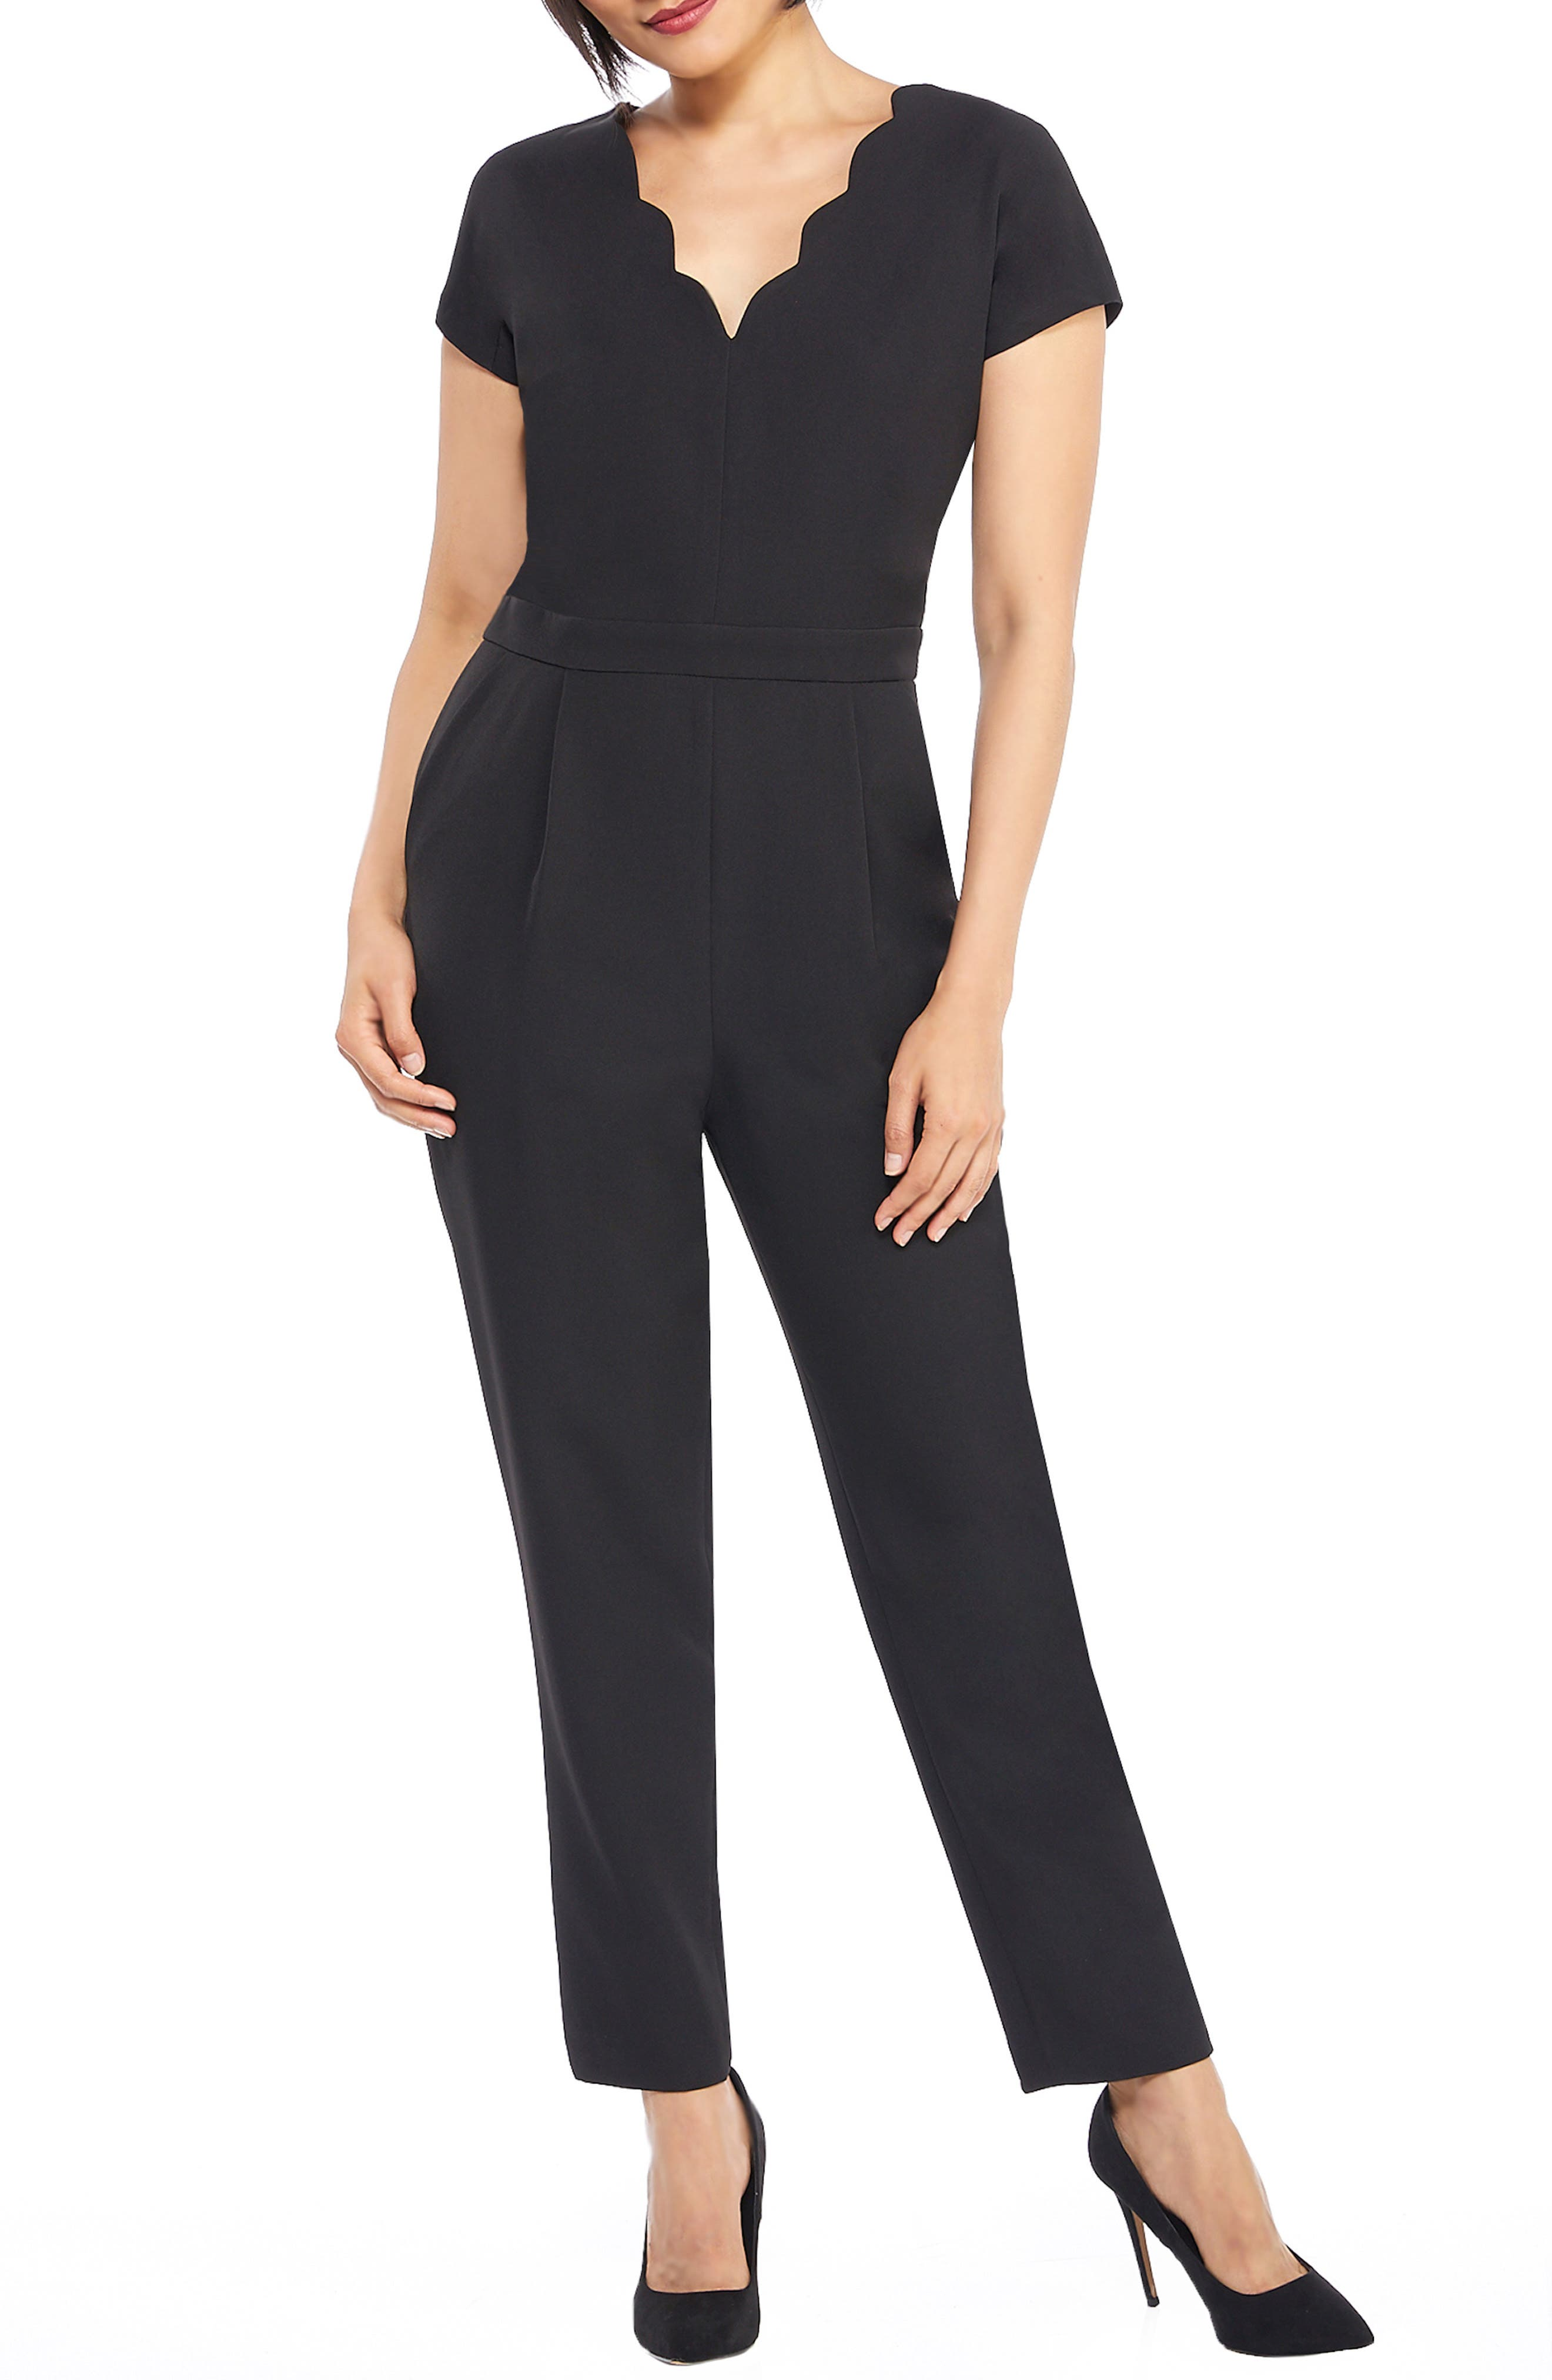 MAGGY LONDON, Crepe Jumpsuit, Main thumbnail 1, color, 001